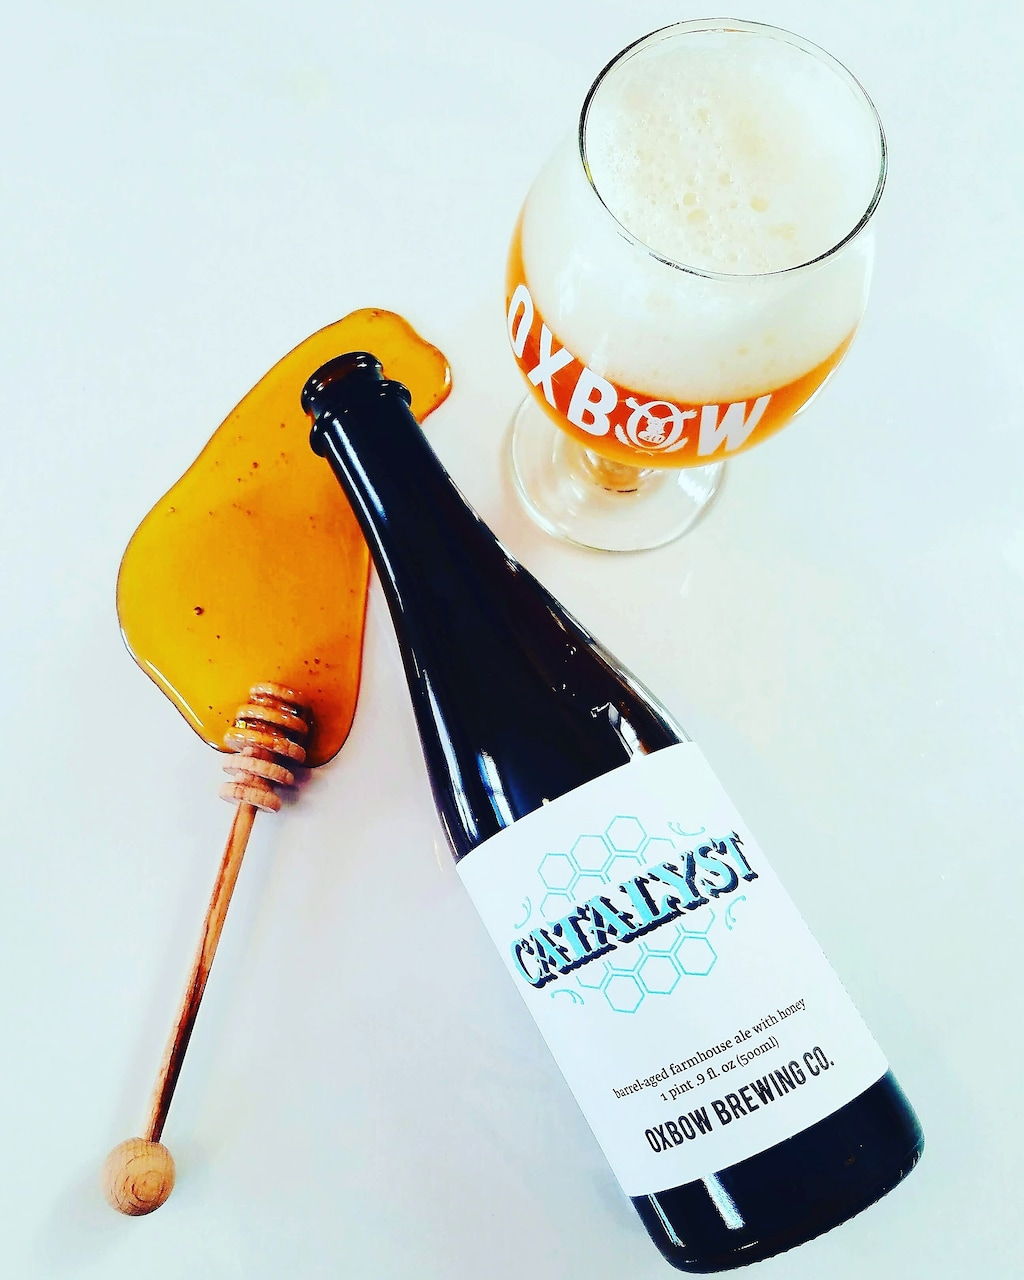 Saison Belgian Farmhouse Ale Oxbow Catalyst Farmhouse Ale Is The Beer Of The Week The